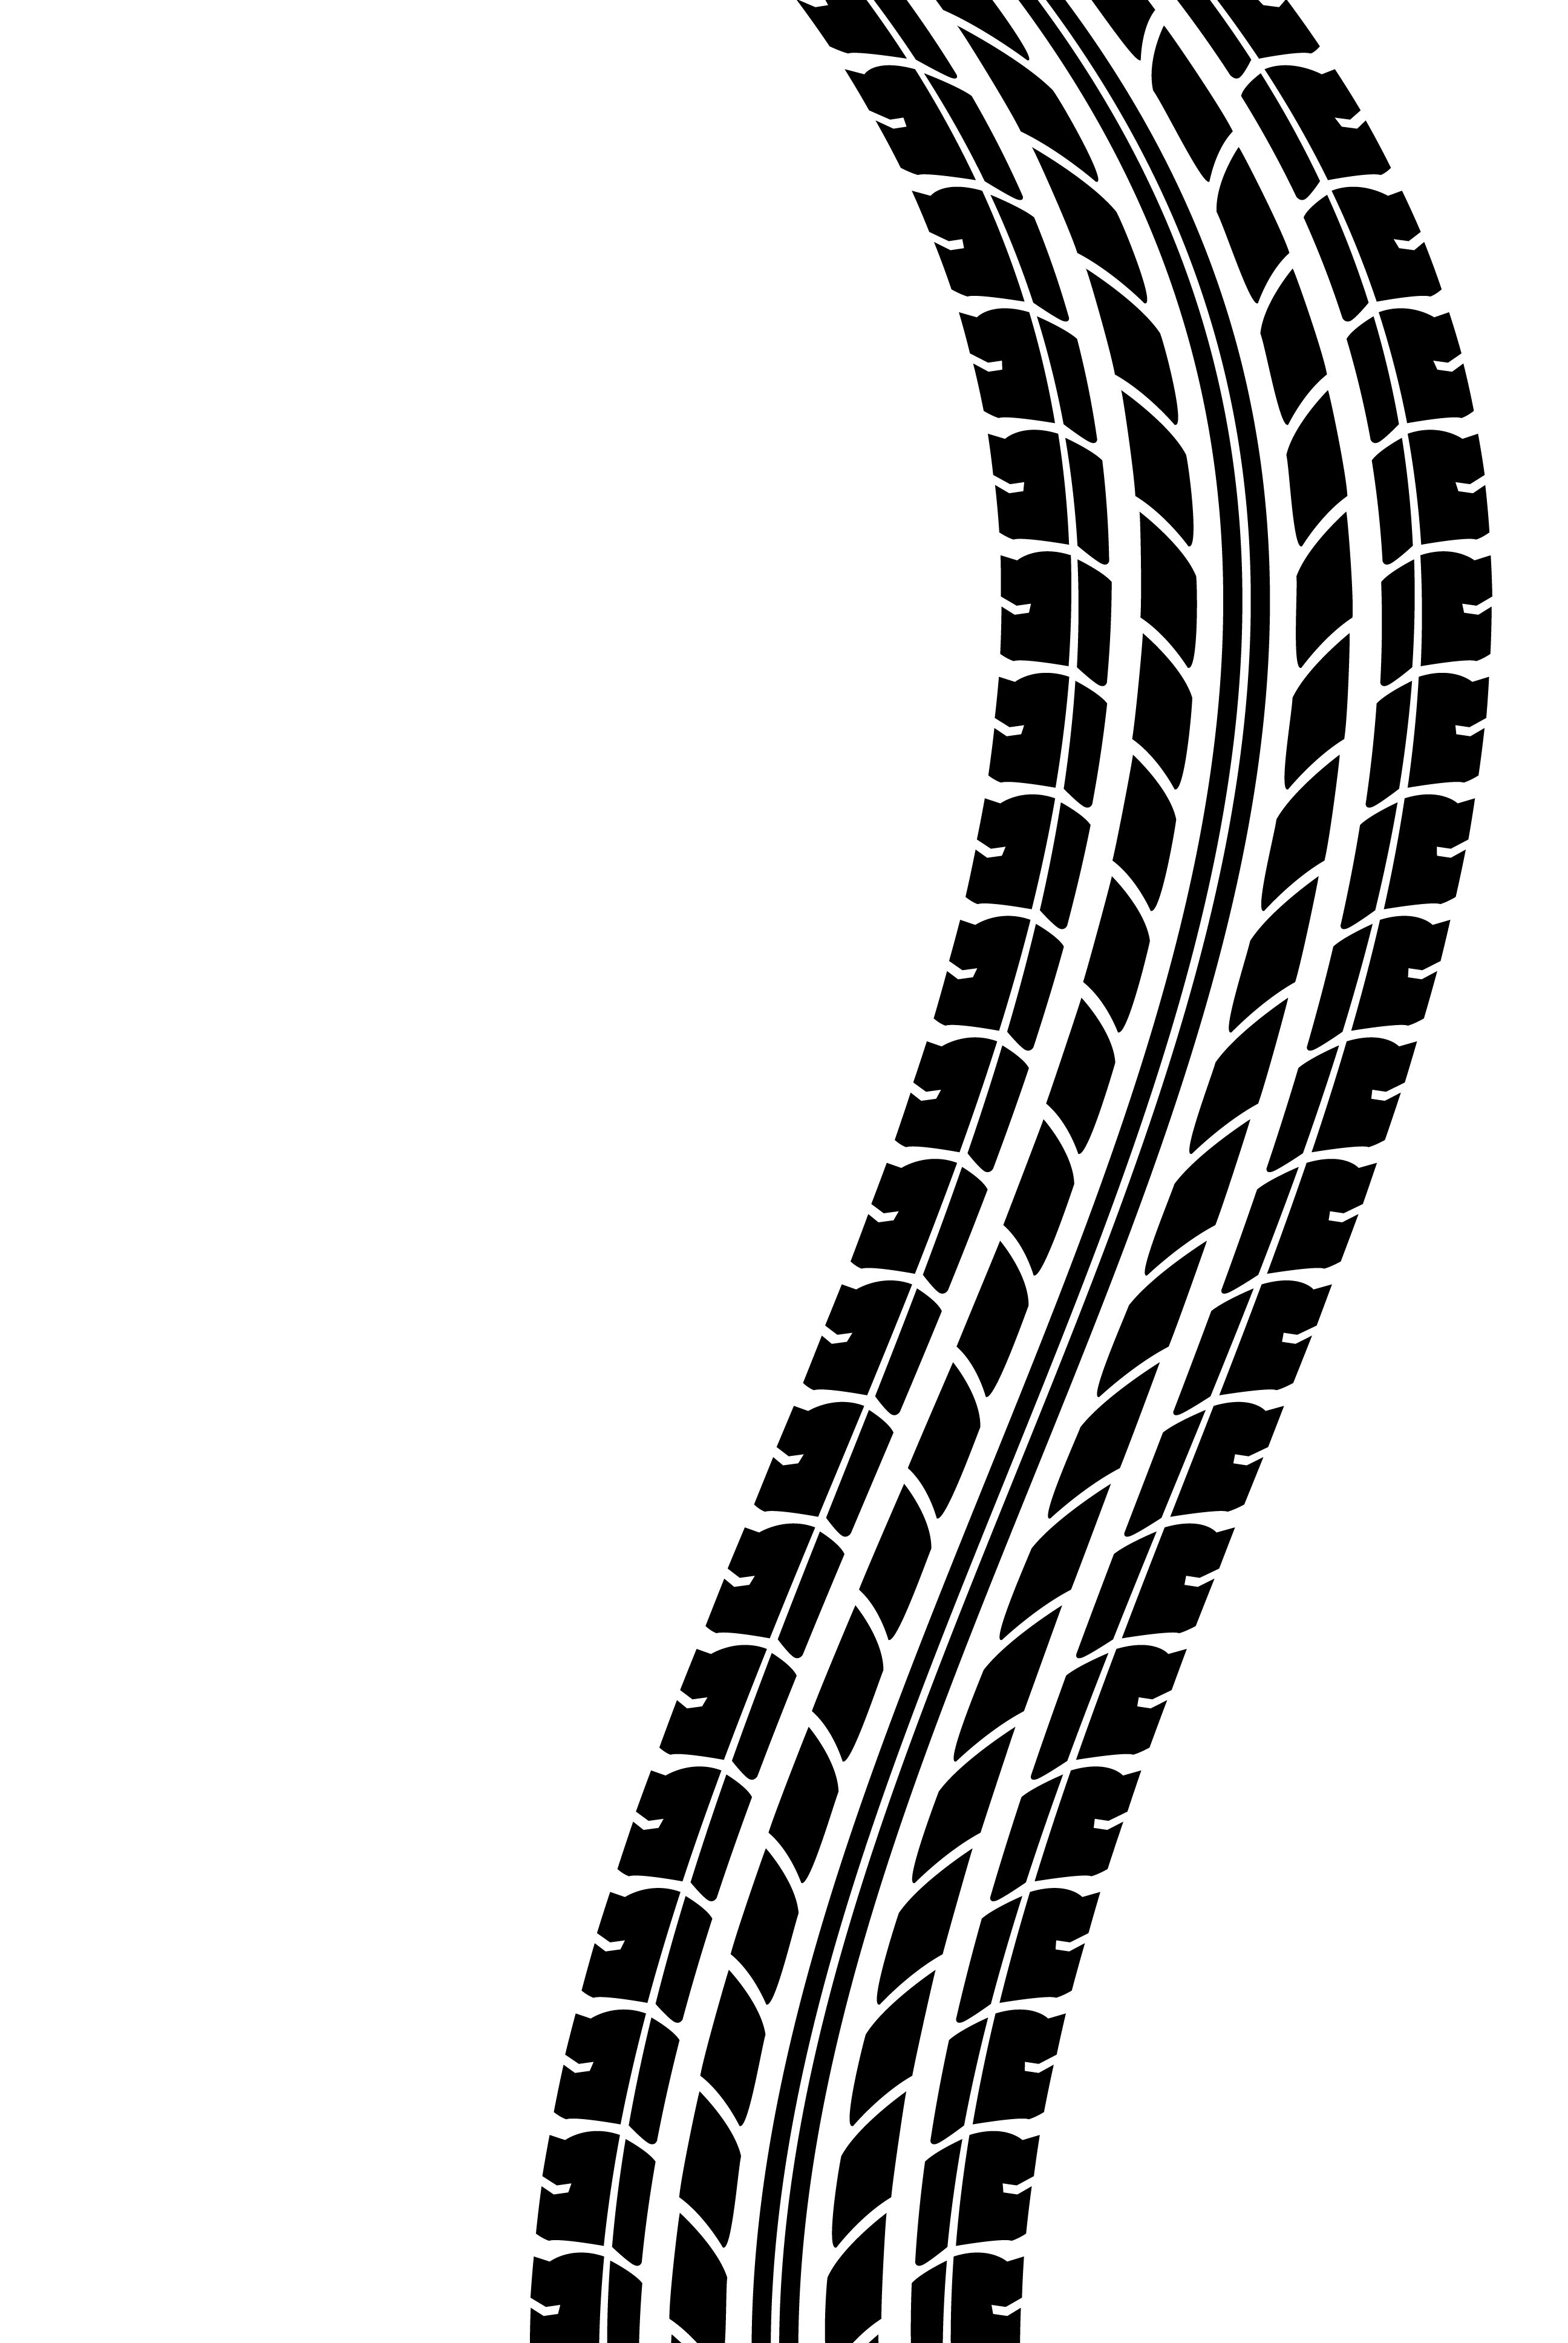 Images For > Train Track Clipart.